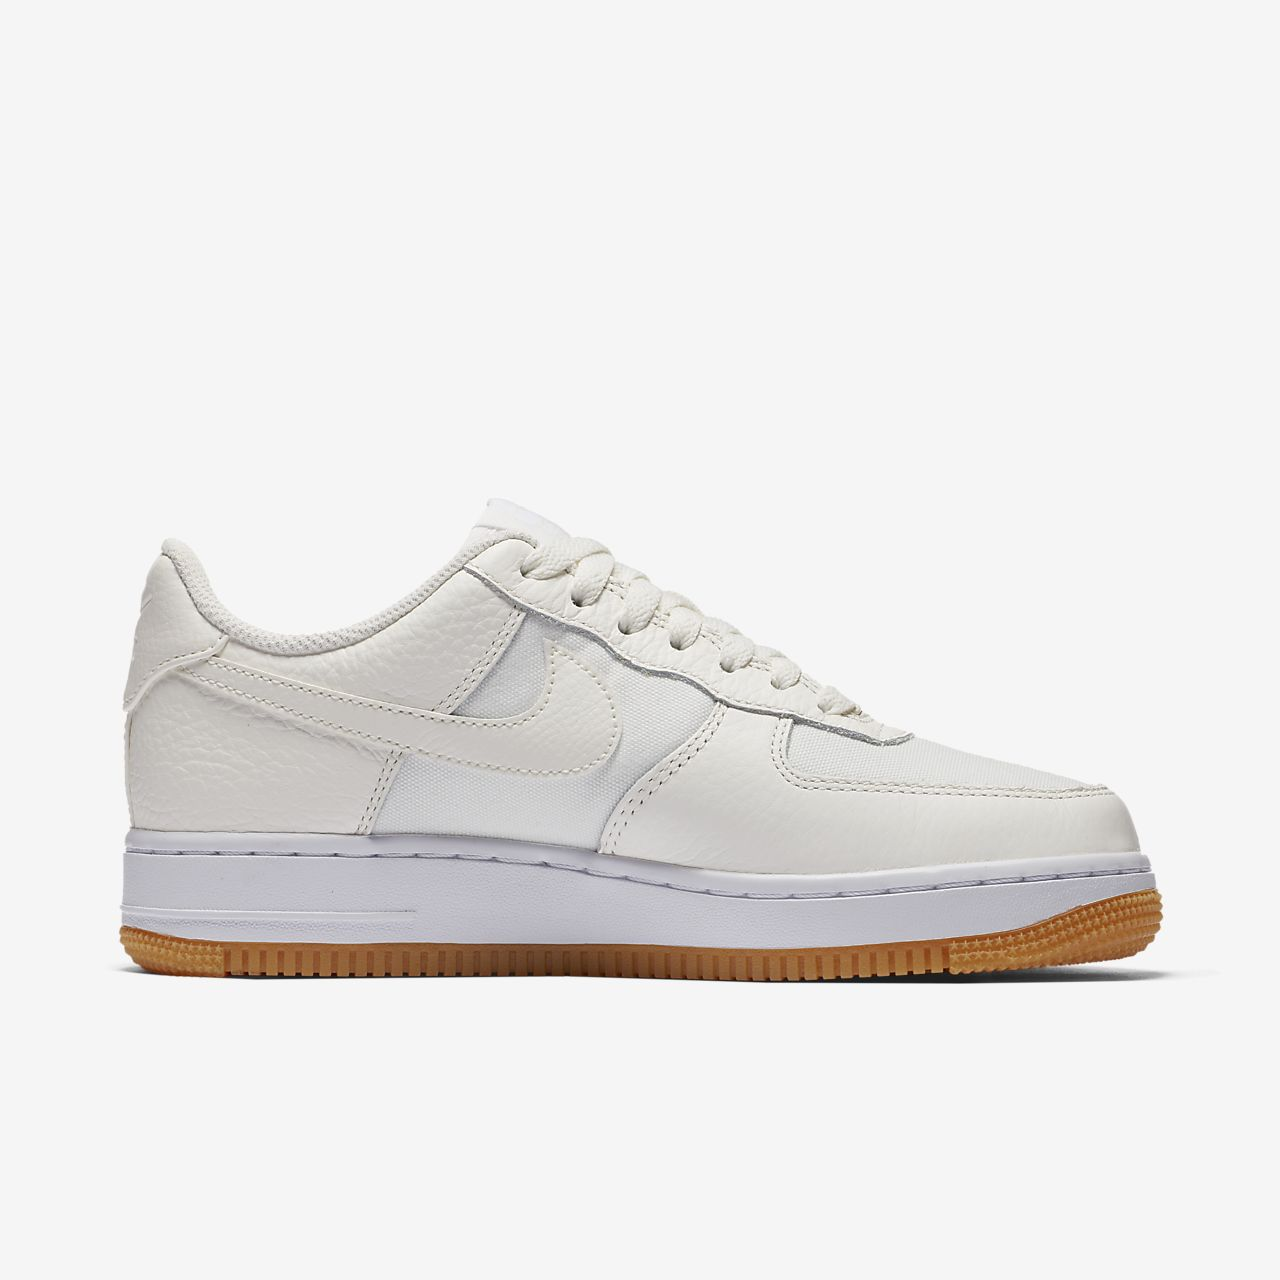 nike air force 1 low id women's nz